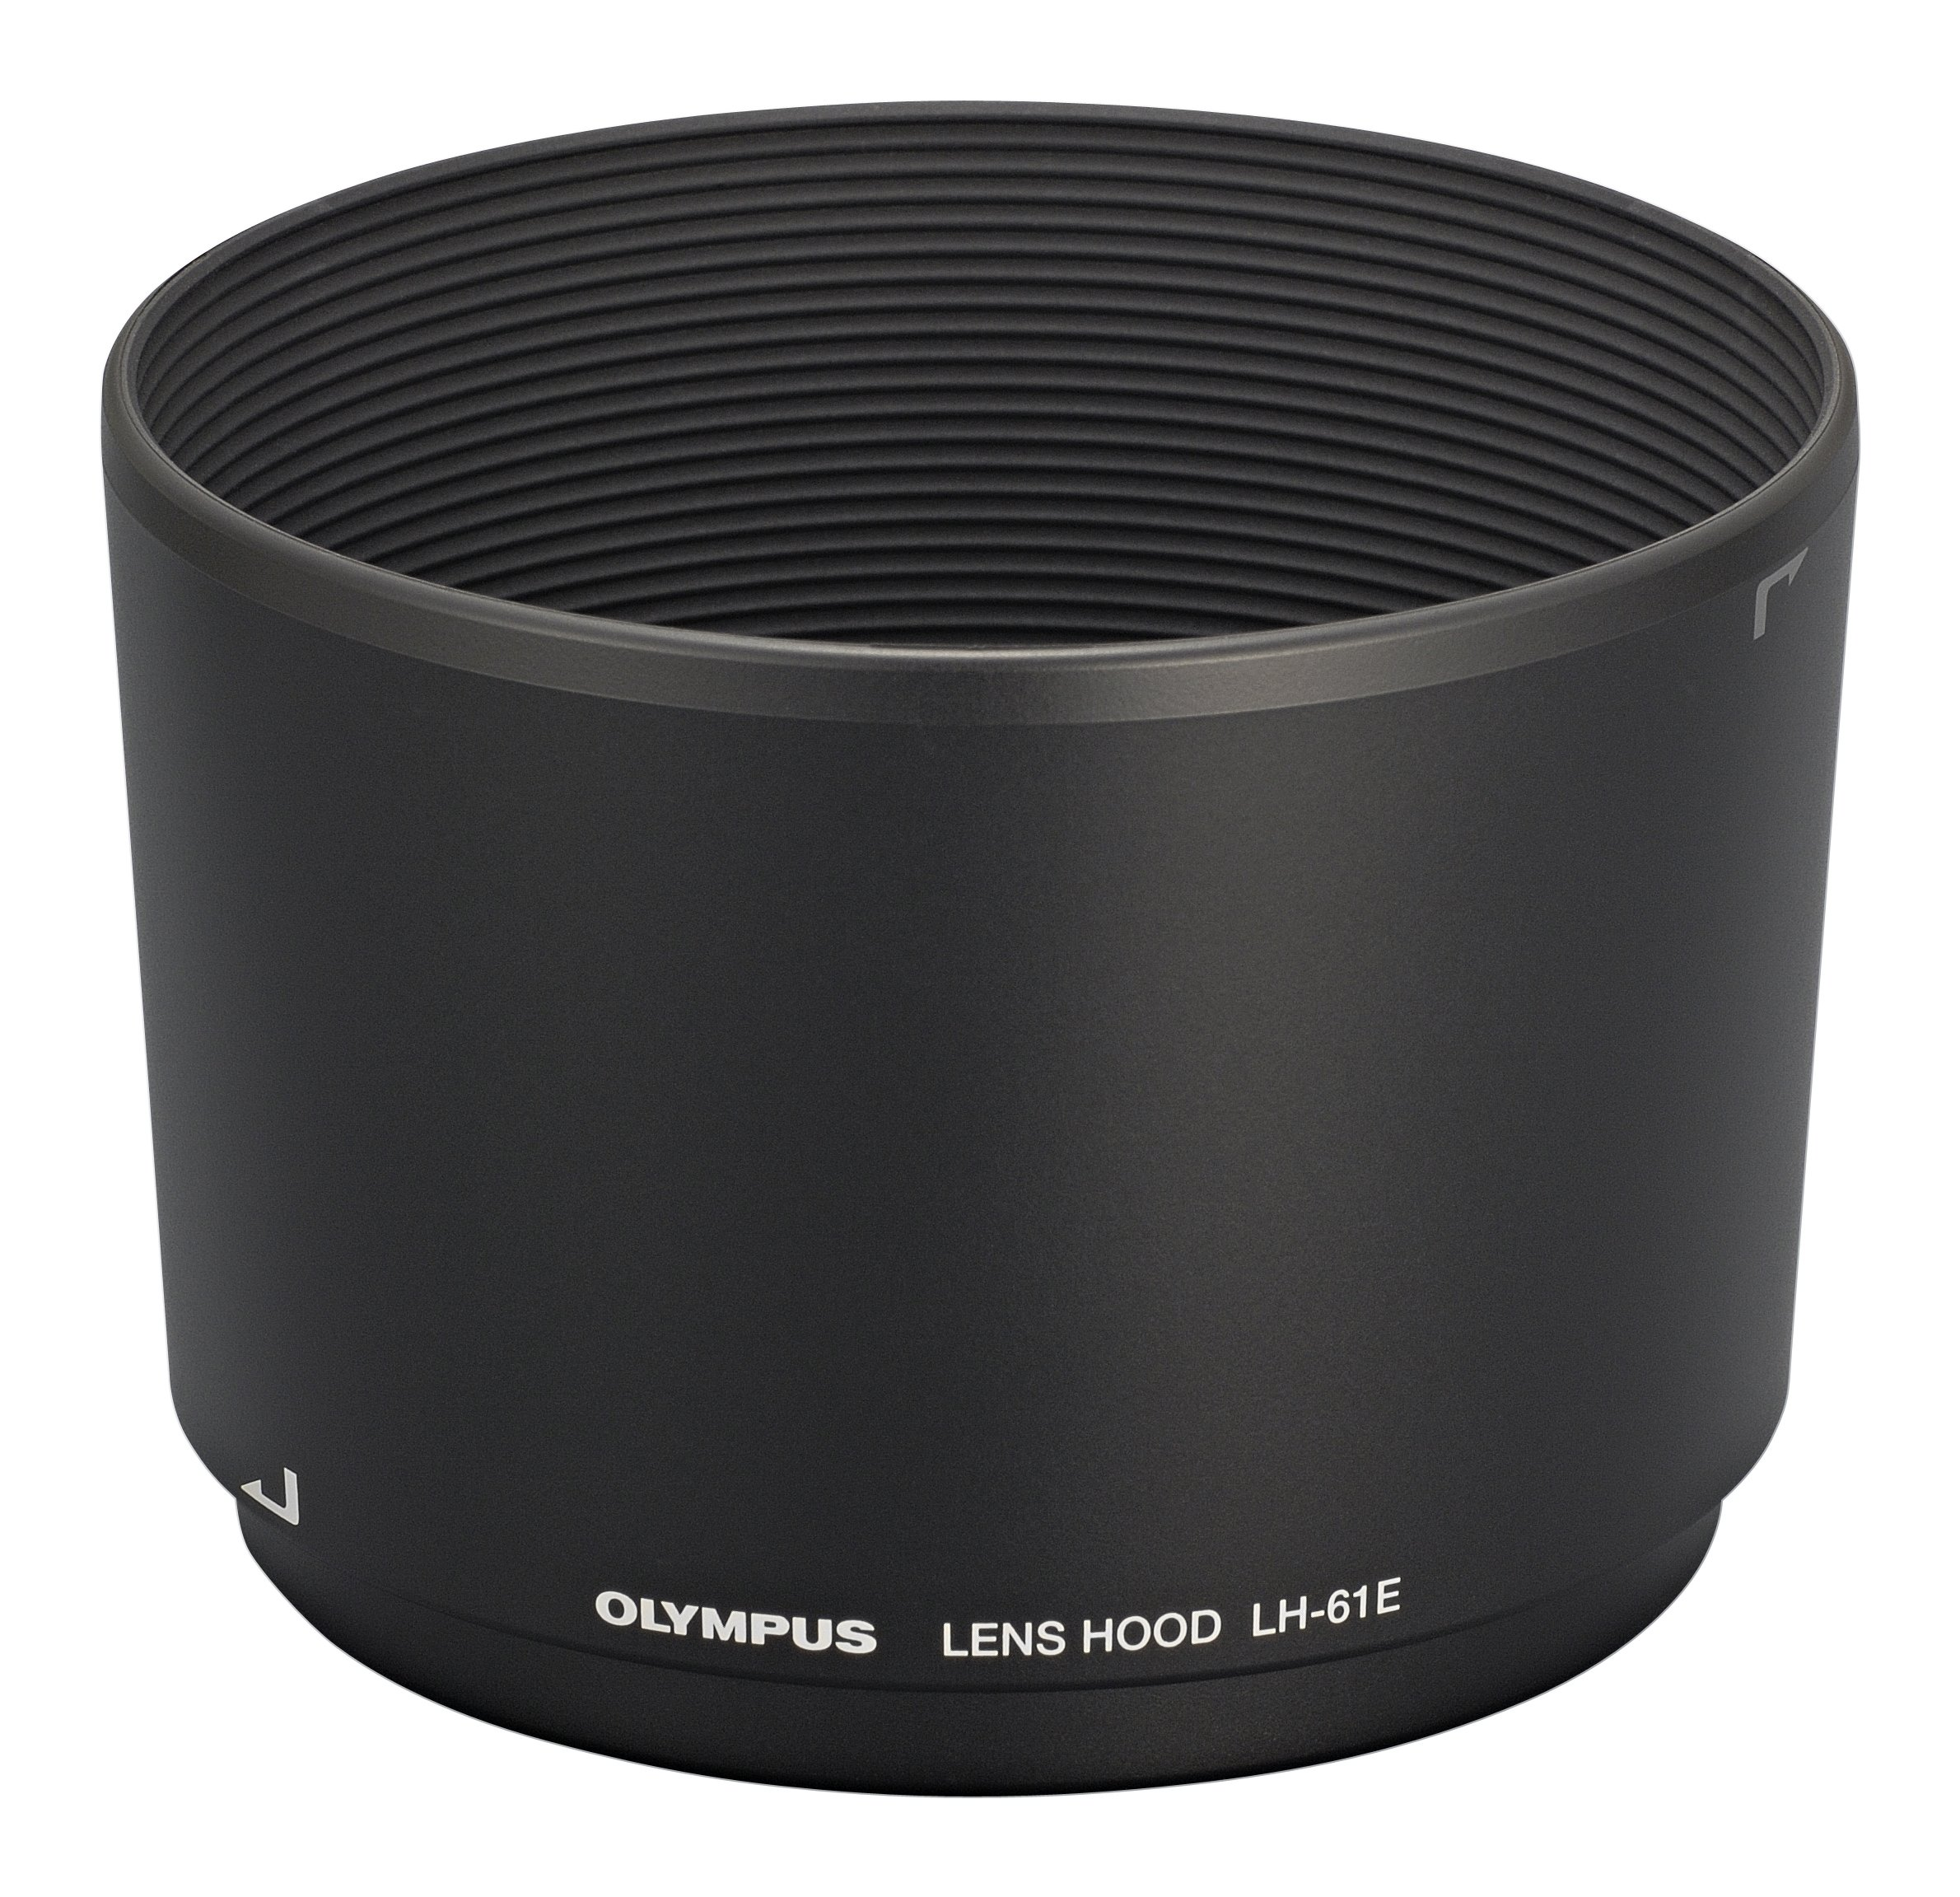 Olympus LH-61E Lens Hood for 70-300mm / Micro Four Thirds 75-300mm